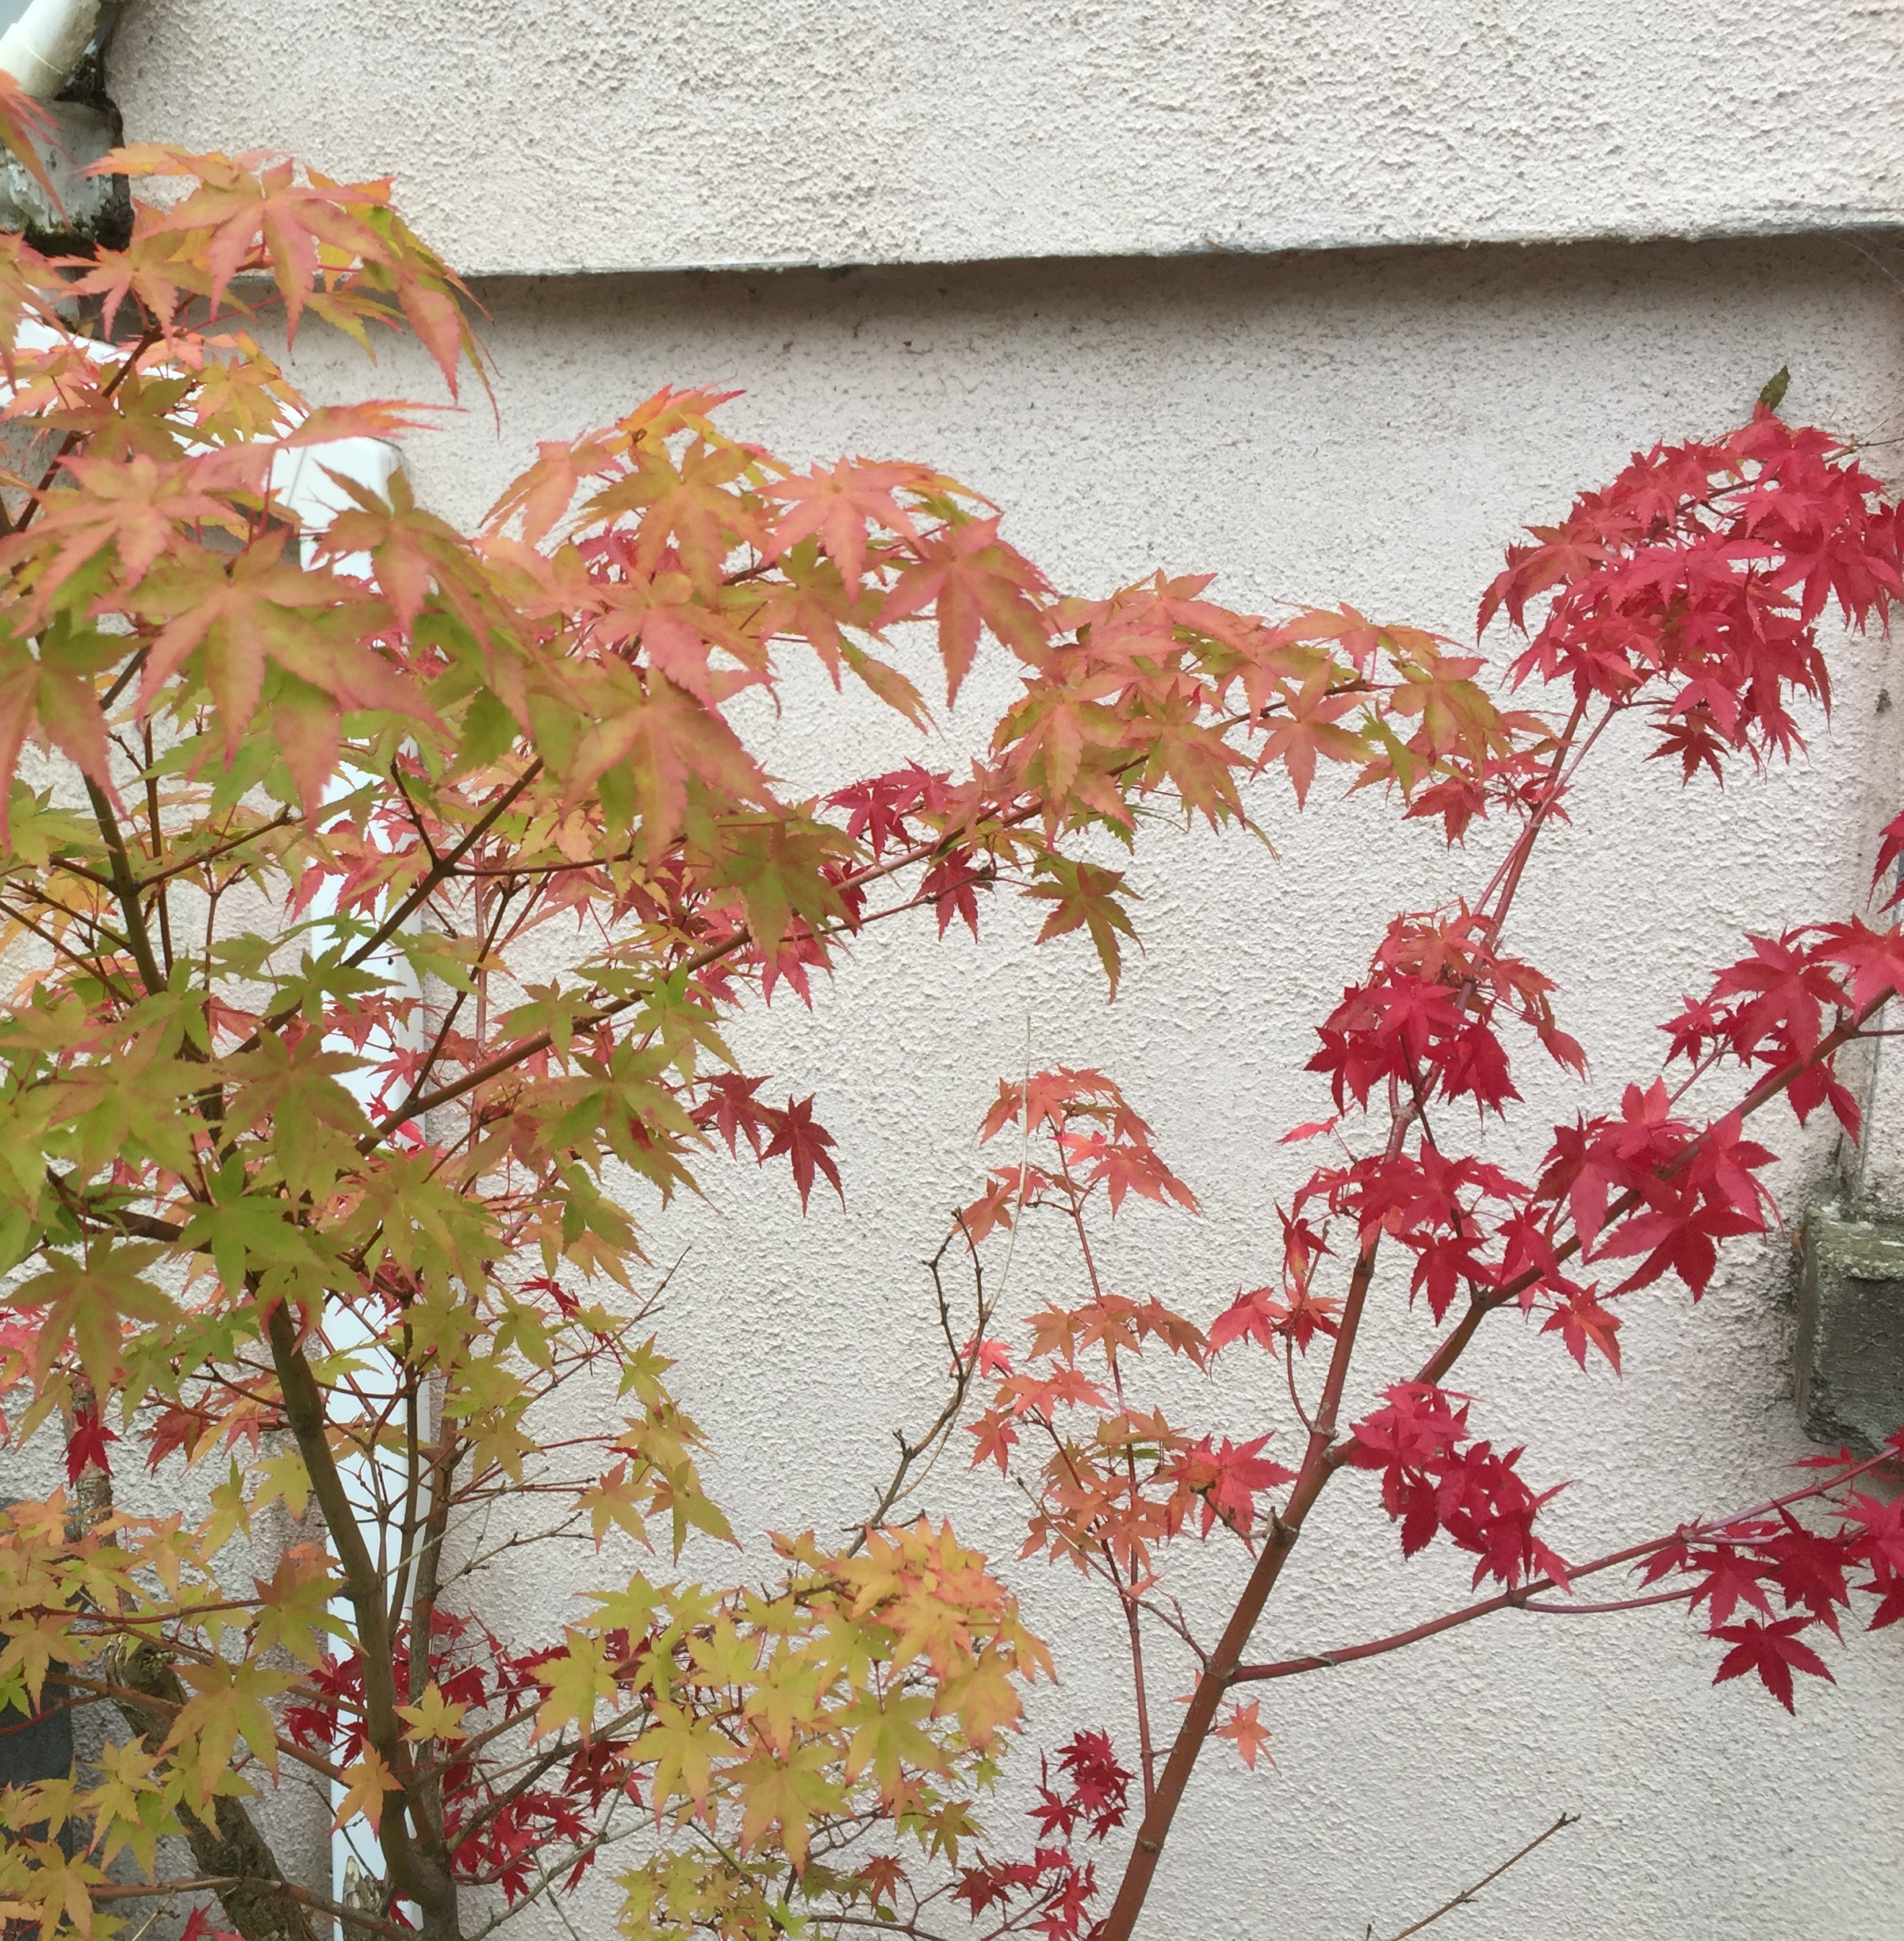 In the garden, Japanese maple leaves turn to red and orange in late September. They will fall off completely in winter.